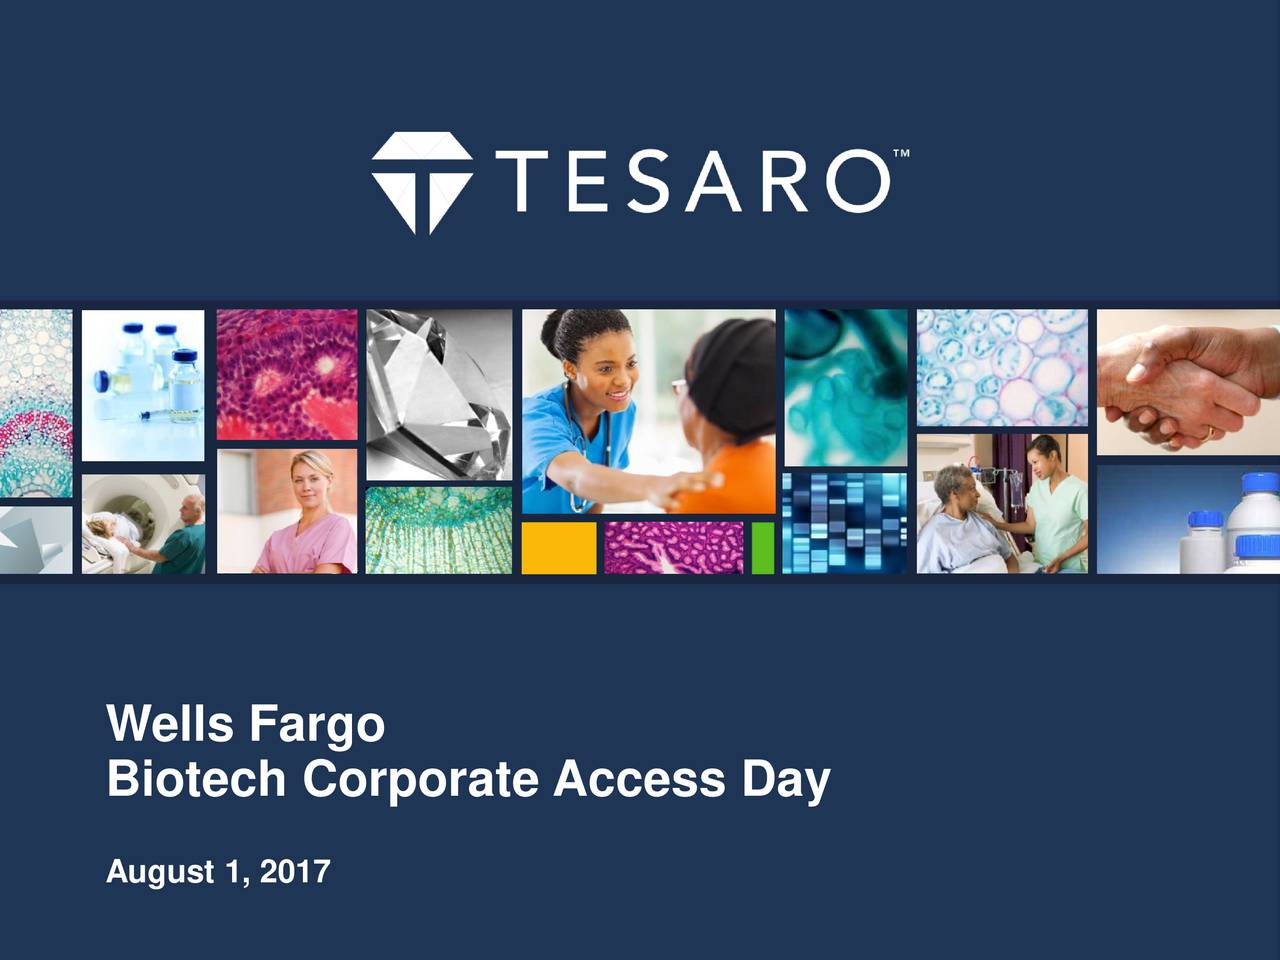 Biotech Corporate Access Day August 1, 2017